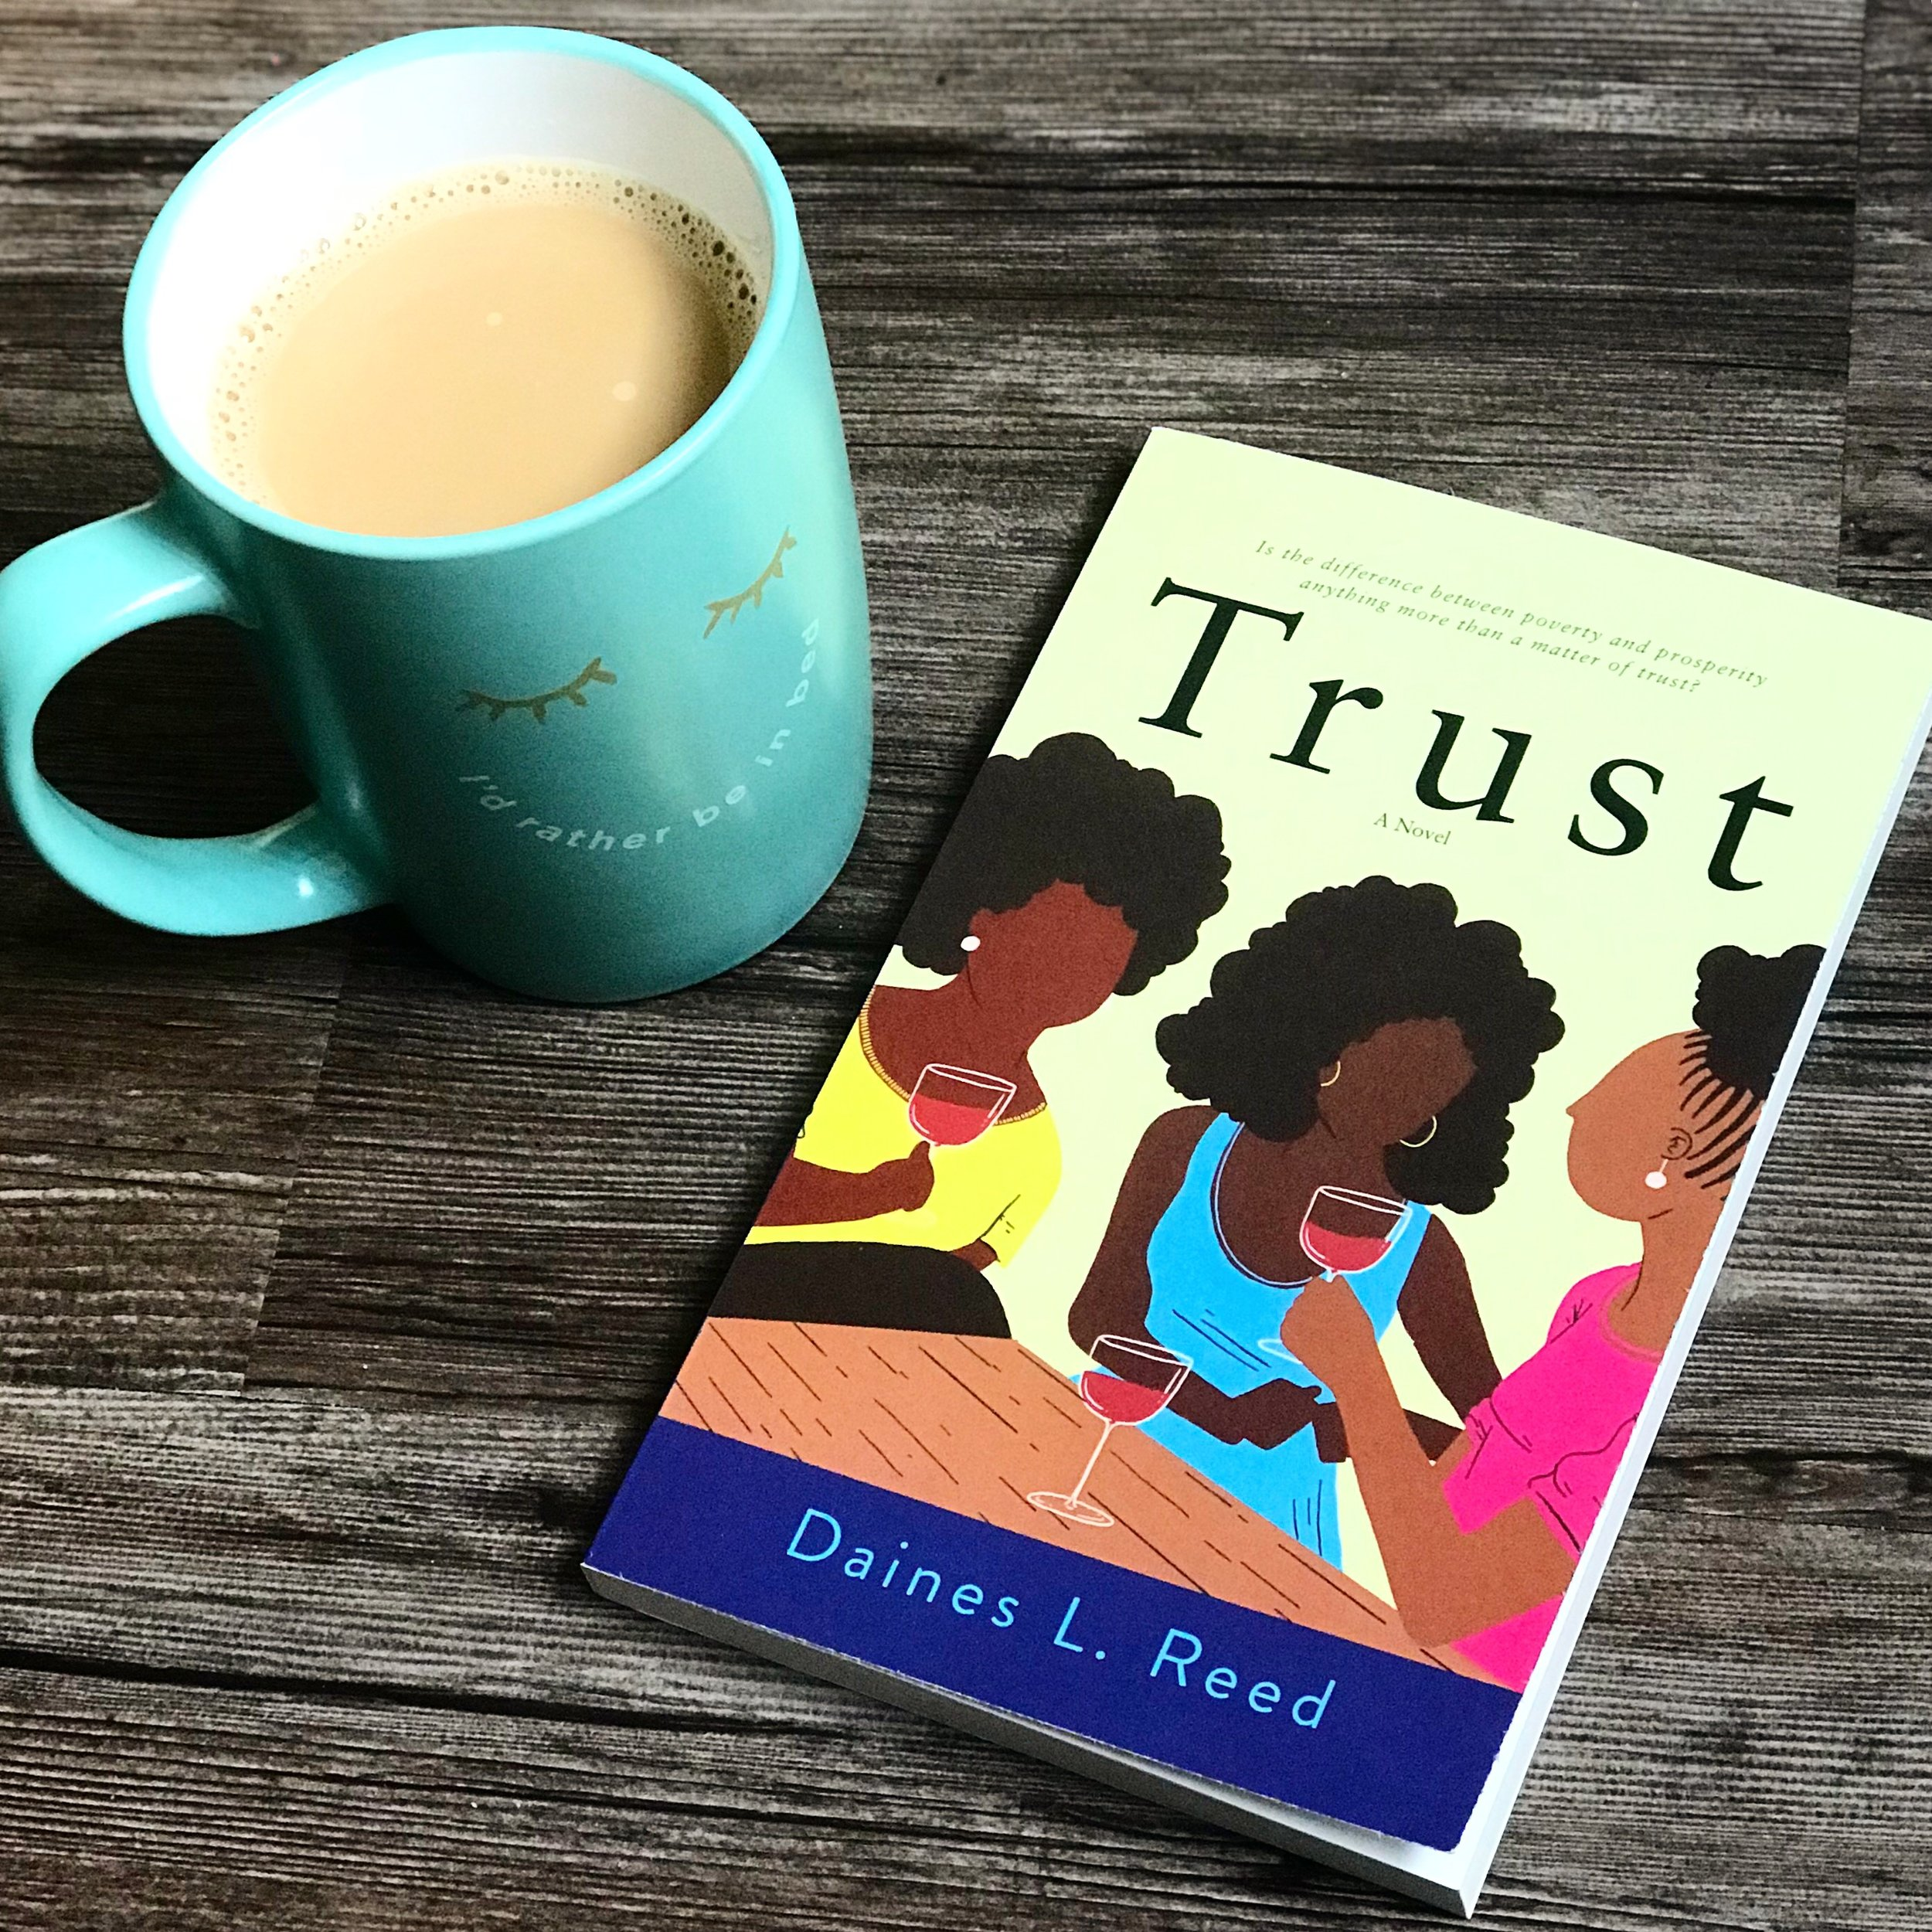 """Trust"" by Daines Reed, photograph by Black & Bookish"